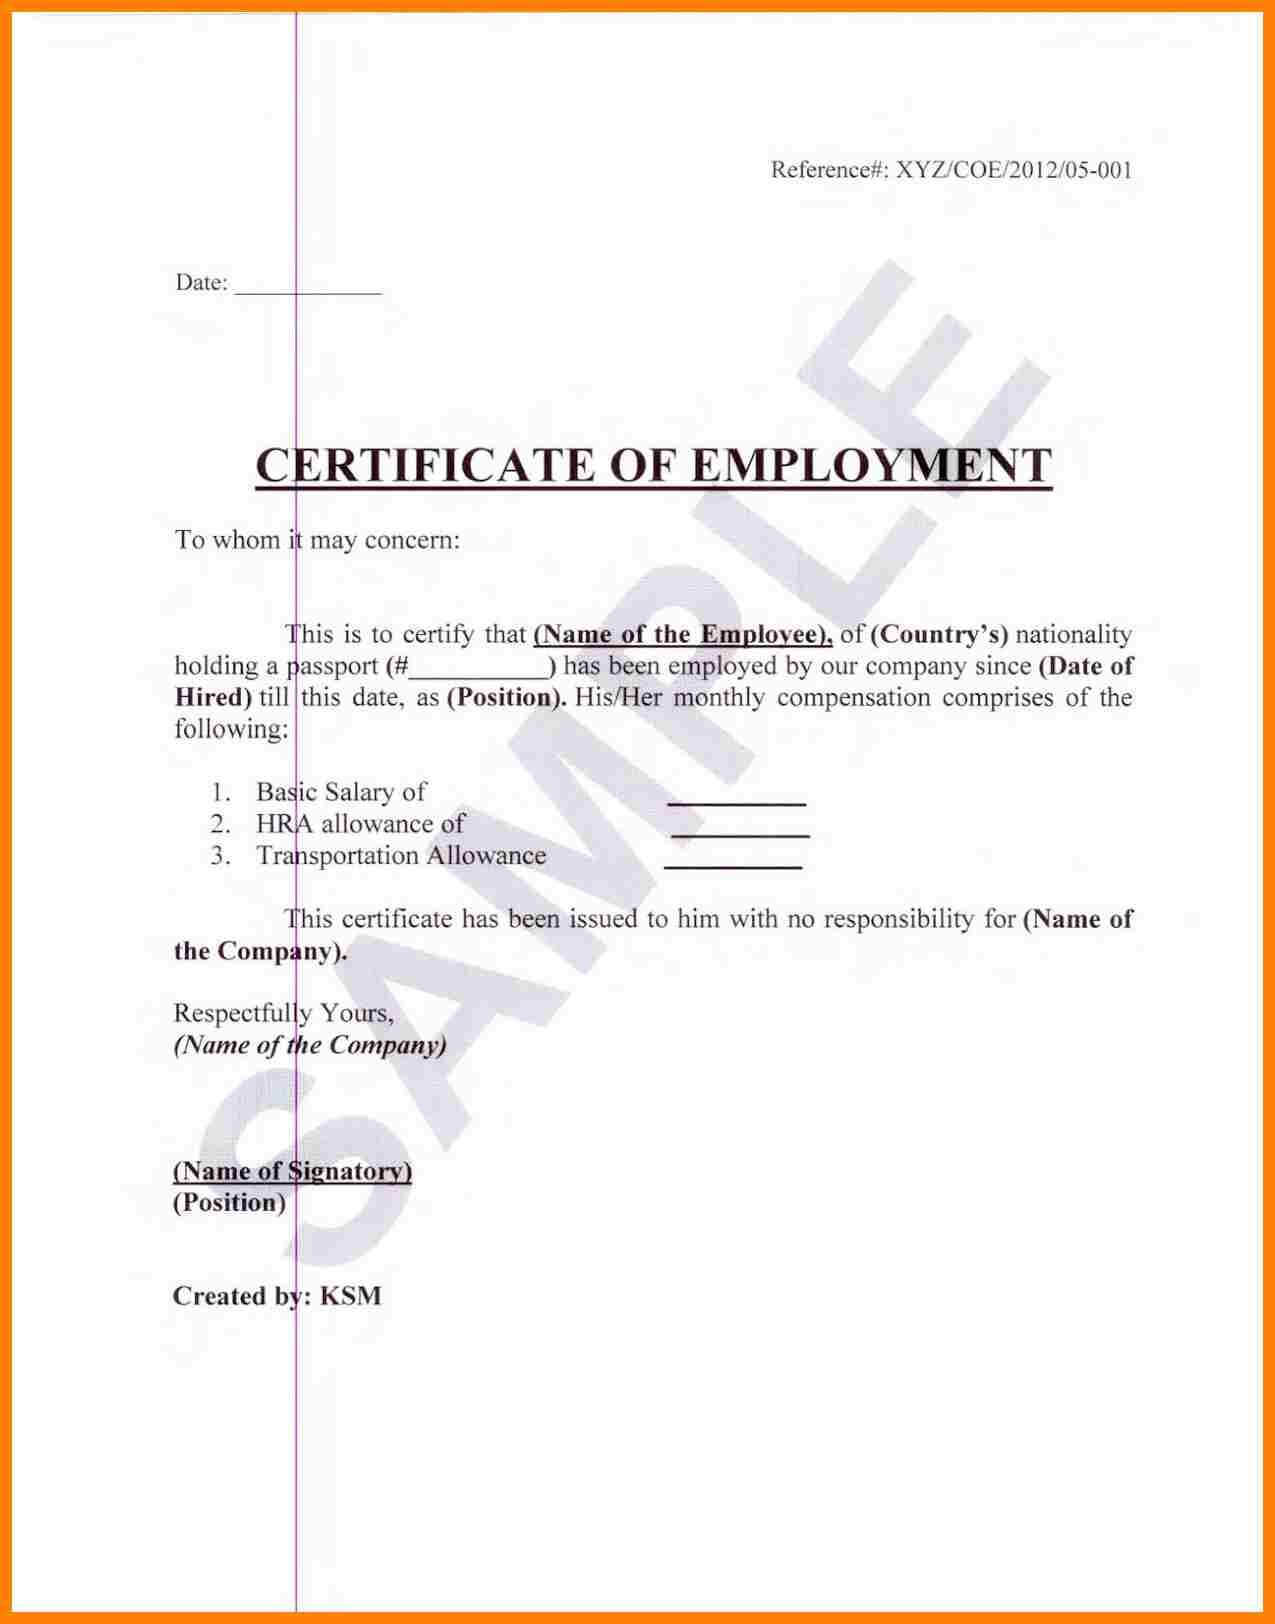 Sample Certification Employment Certificate Tugon Med Clinic Regarding Template Of Certificate Of Employment